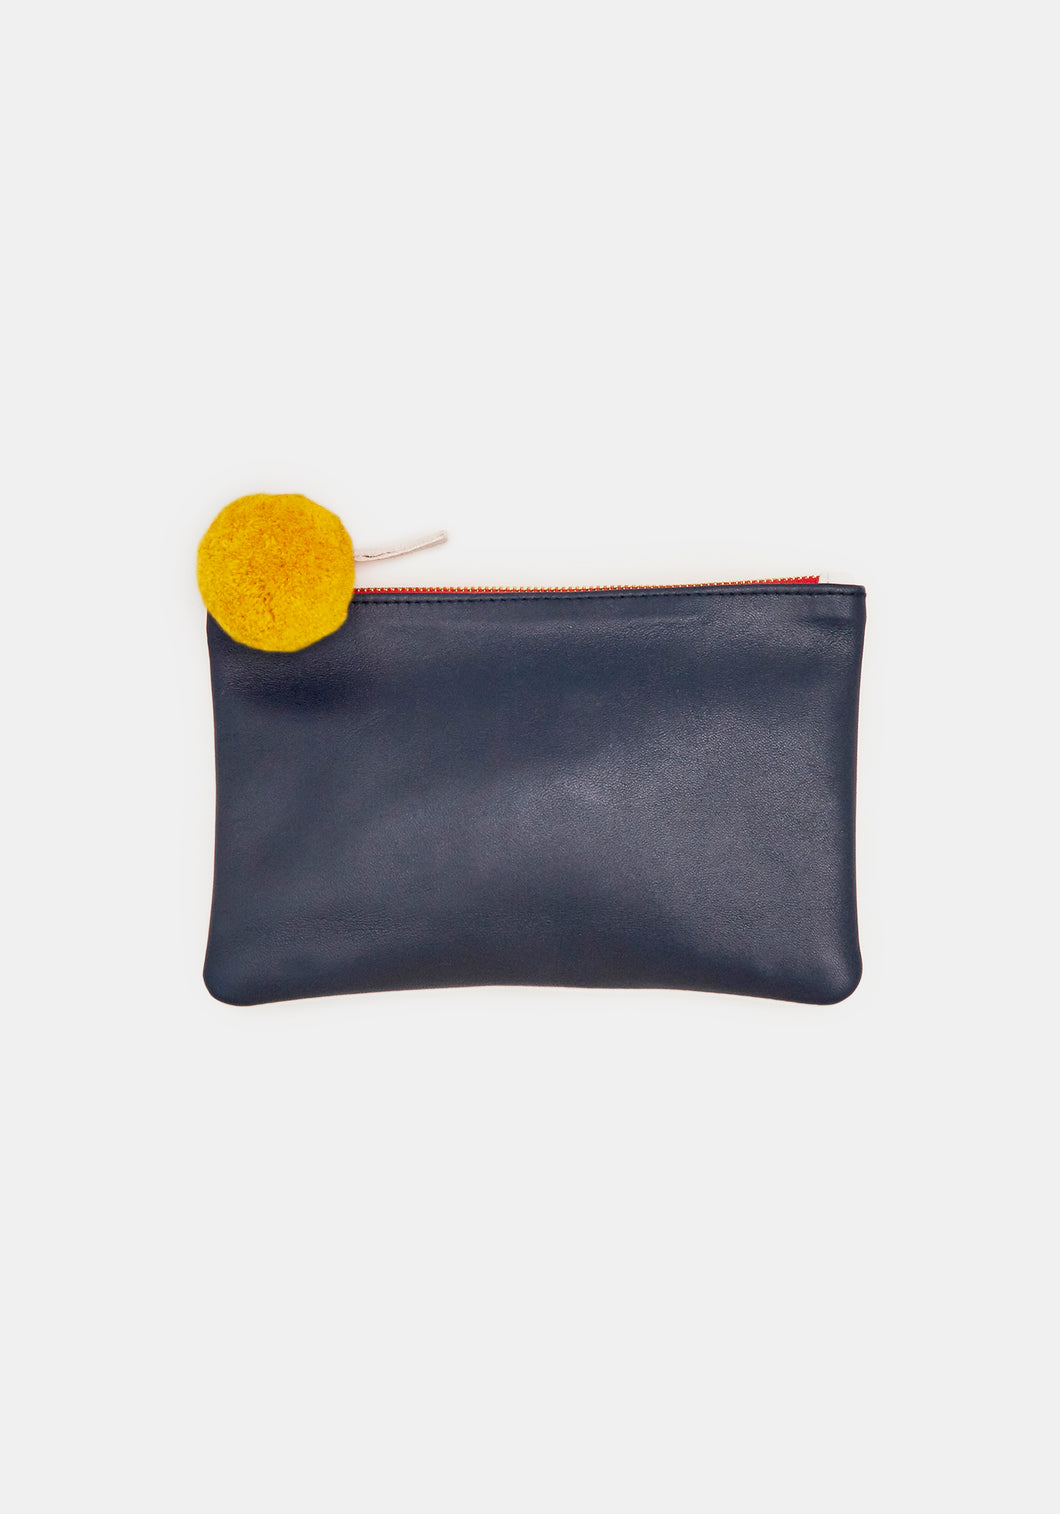 DEMYLEE x CLARE V. Wallet Clutch in Yellow